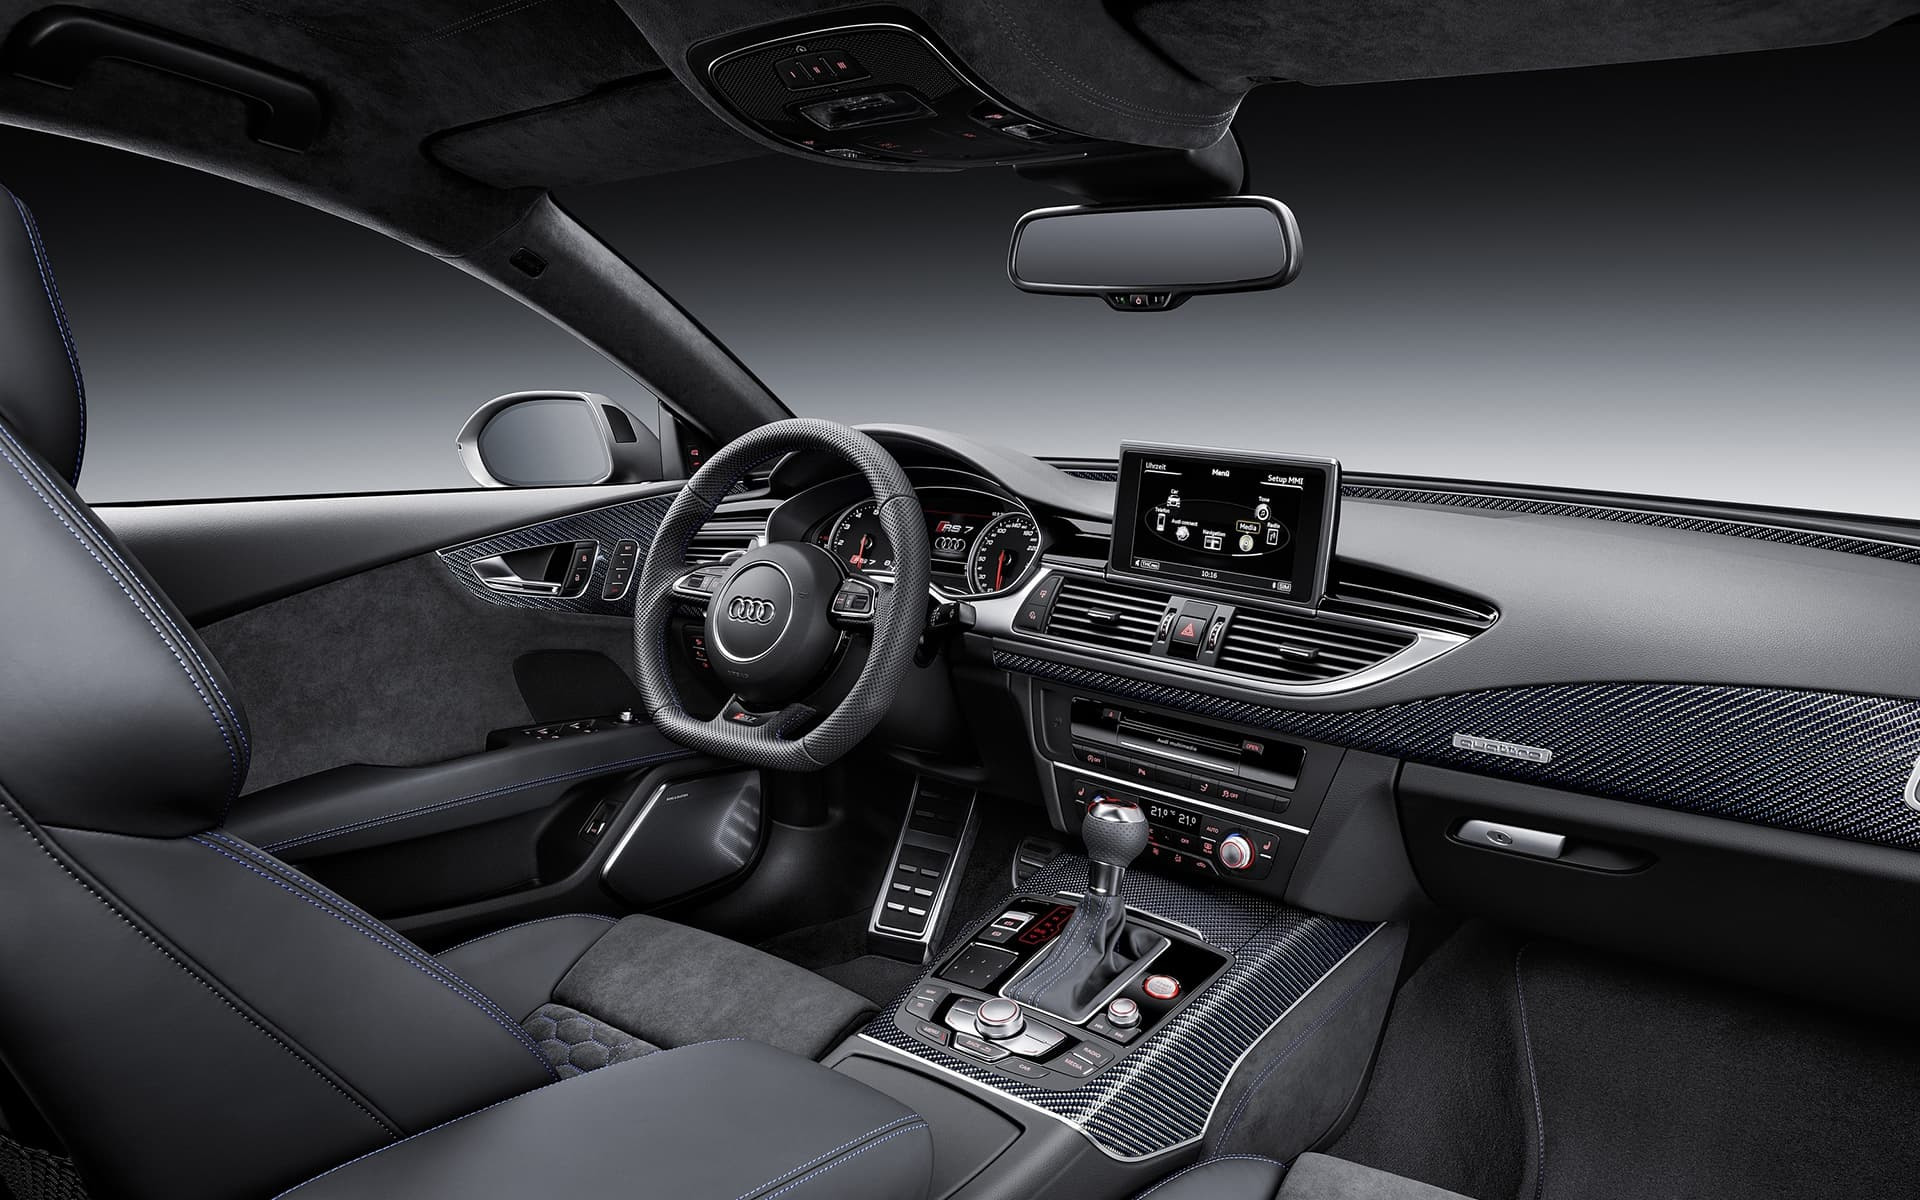 Black Leather 2016 Audi Rs7 Interior Hd Photo Hd Image 7